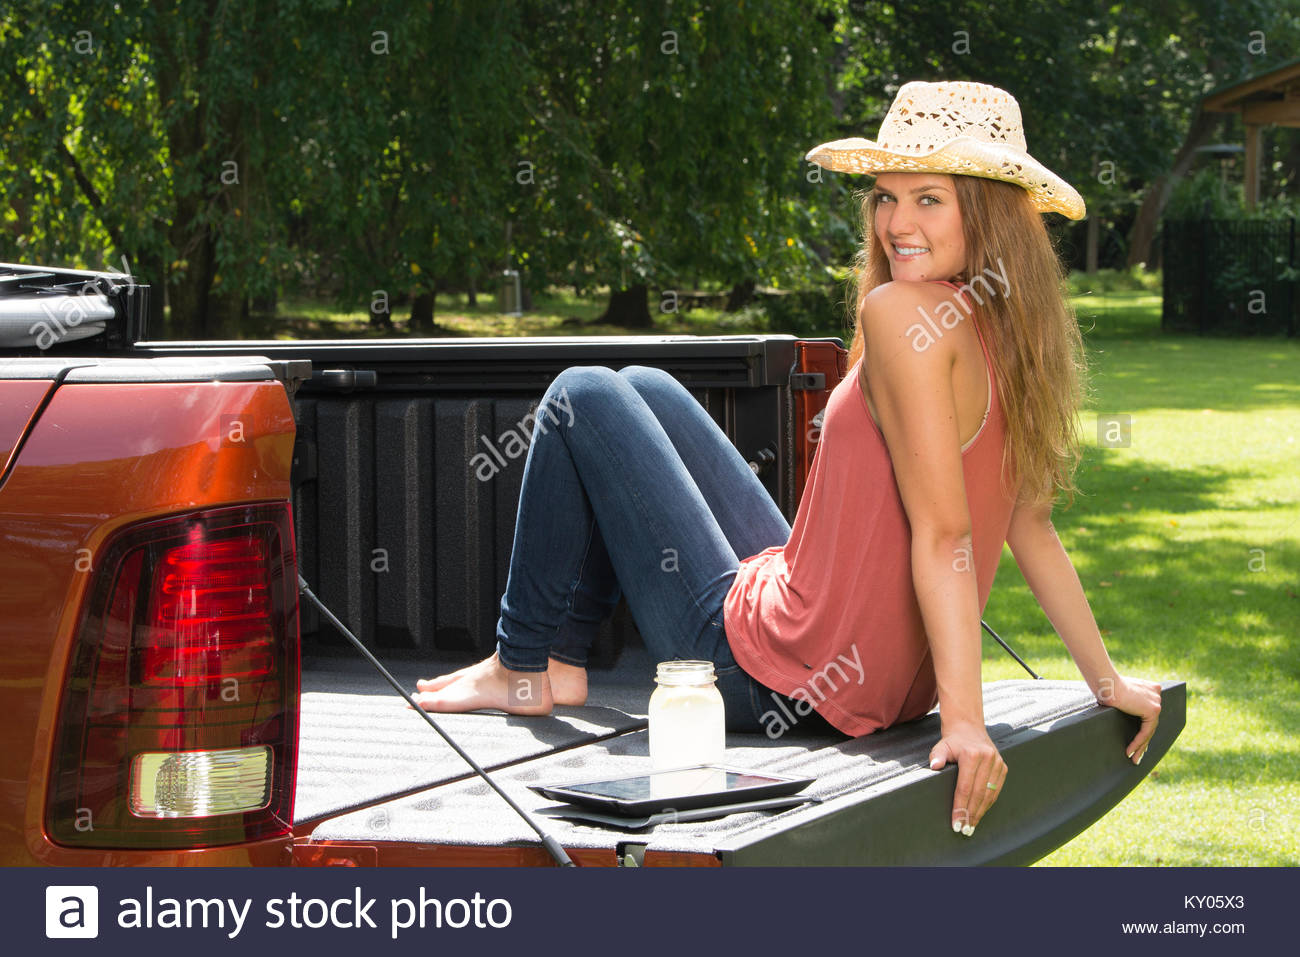 66cea0bb078 Beautiful young country girl poses with jar of lemonade in back of pickup  truck on farm